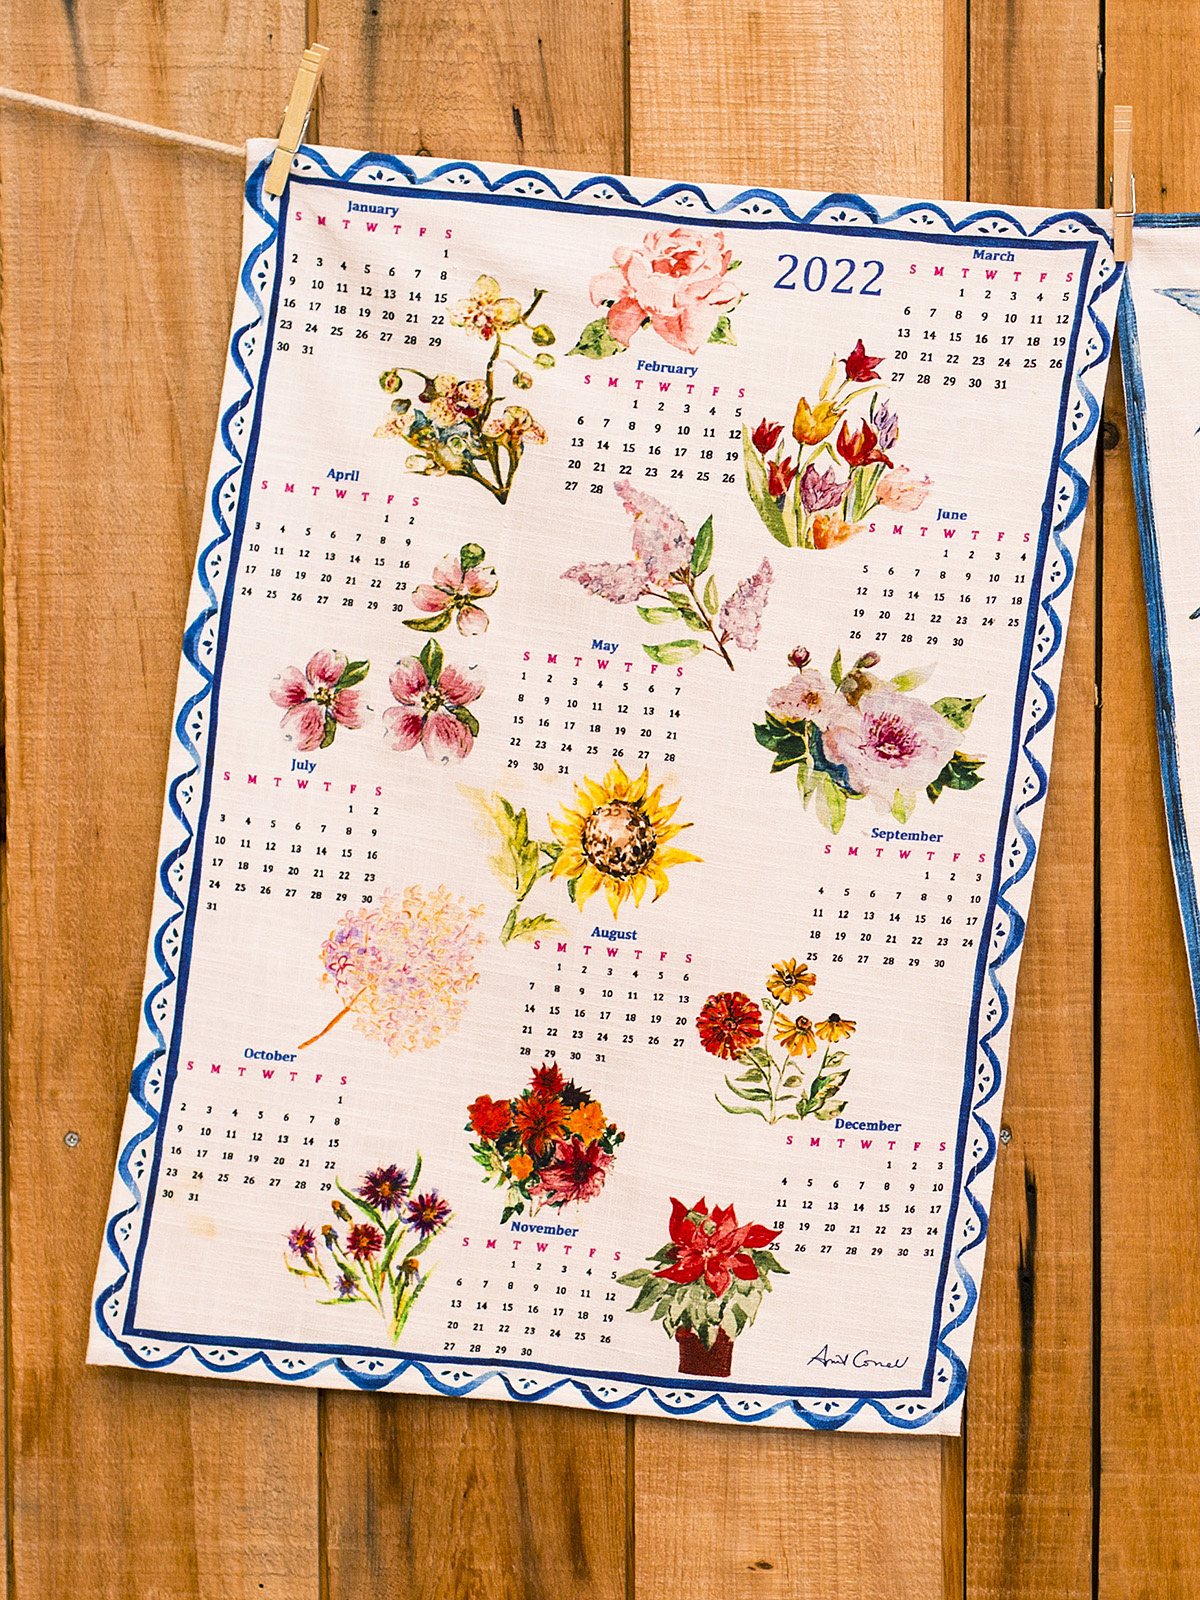 APRIL CORNELL A YEAR IN FLOWERS TEA TOWEL-1